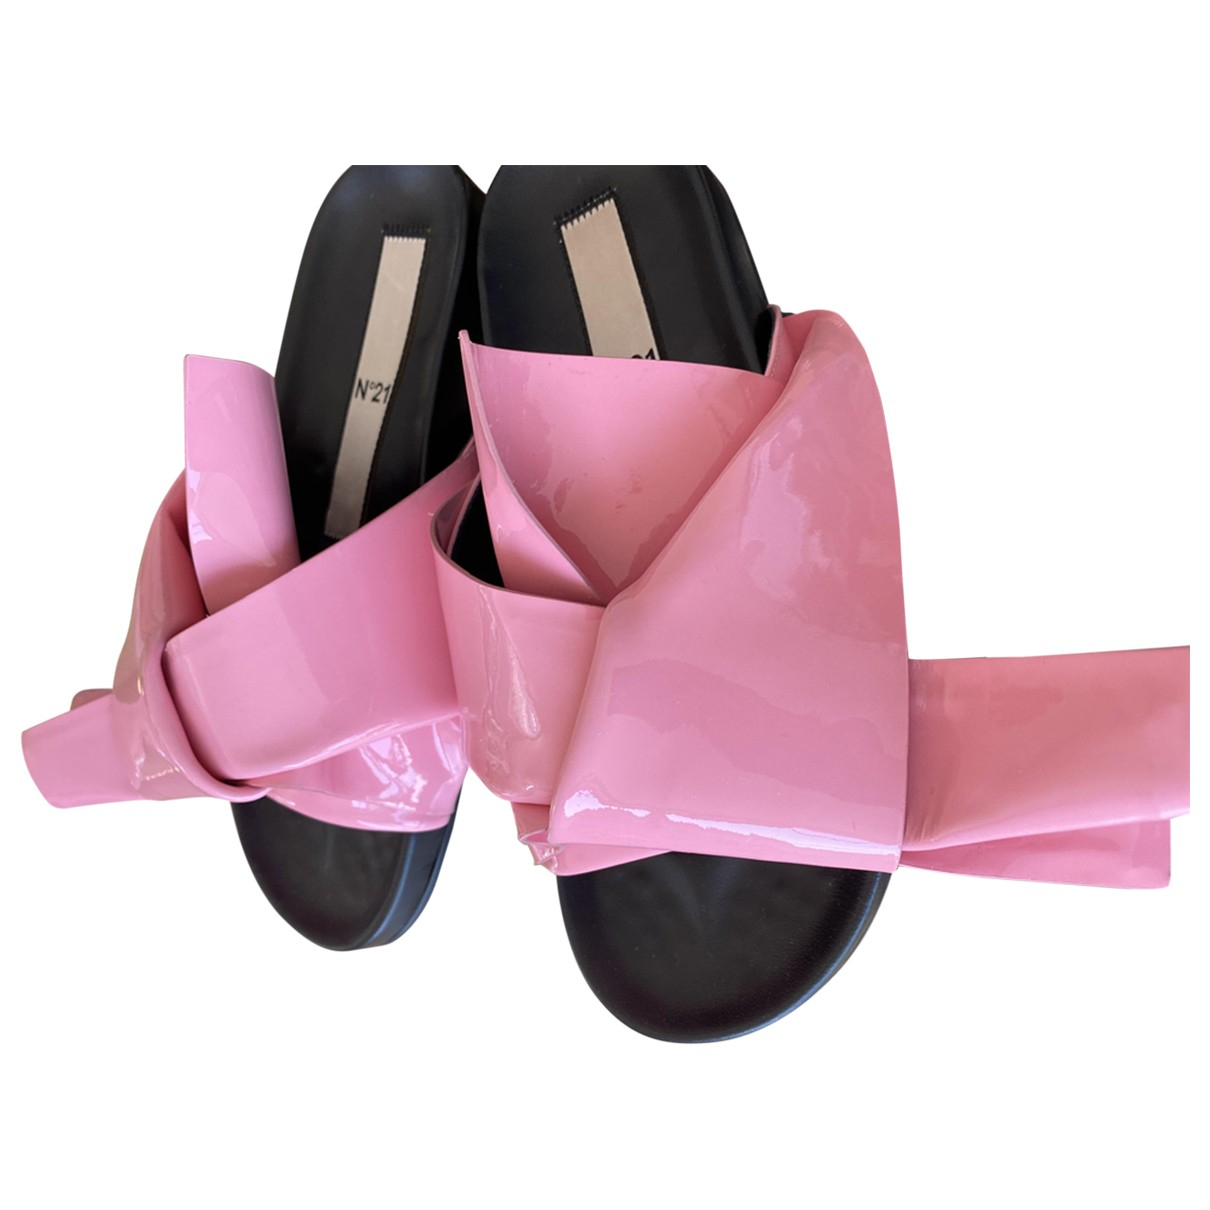 N°21 \N Pink Patent leather Sandals for Women 37 EU